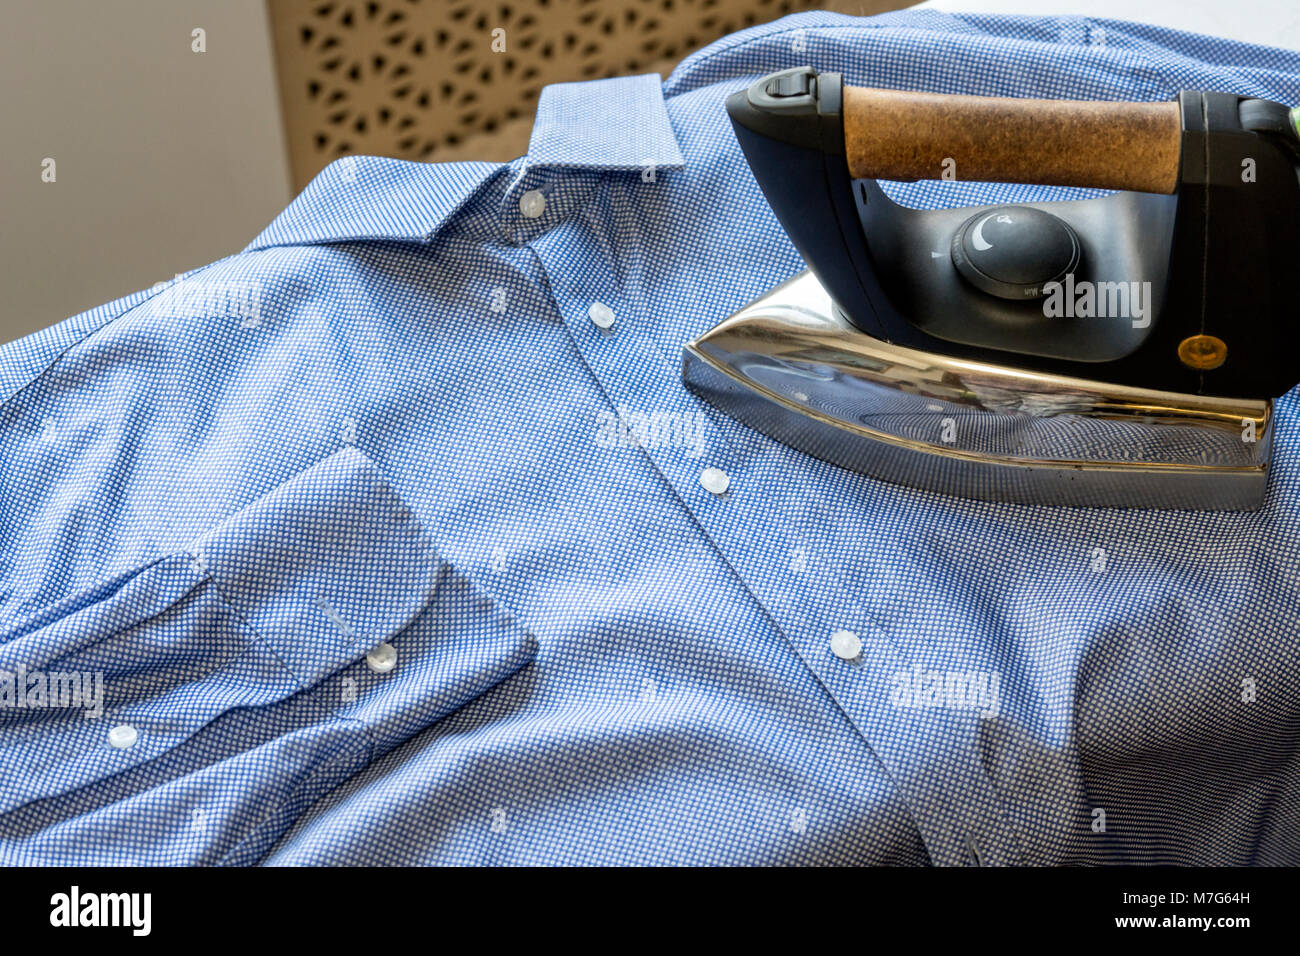 The iron strokes the man's blue shirt. Cleanliness and tidiness - Stock Image